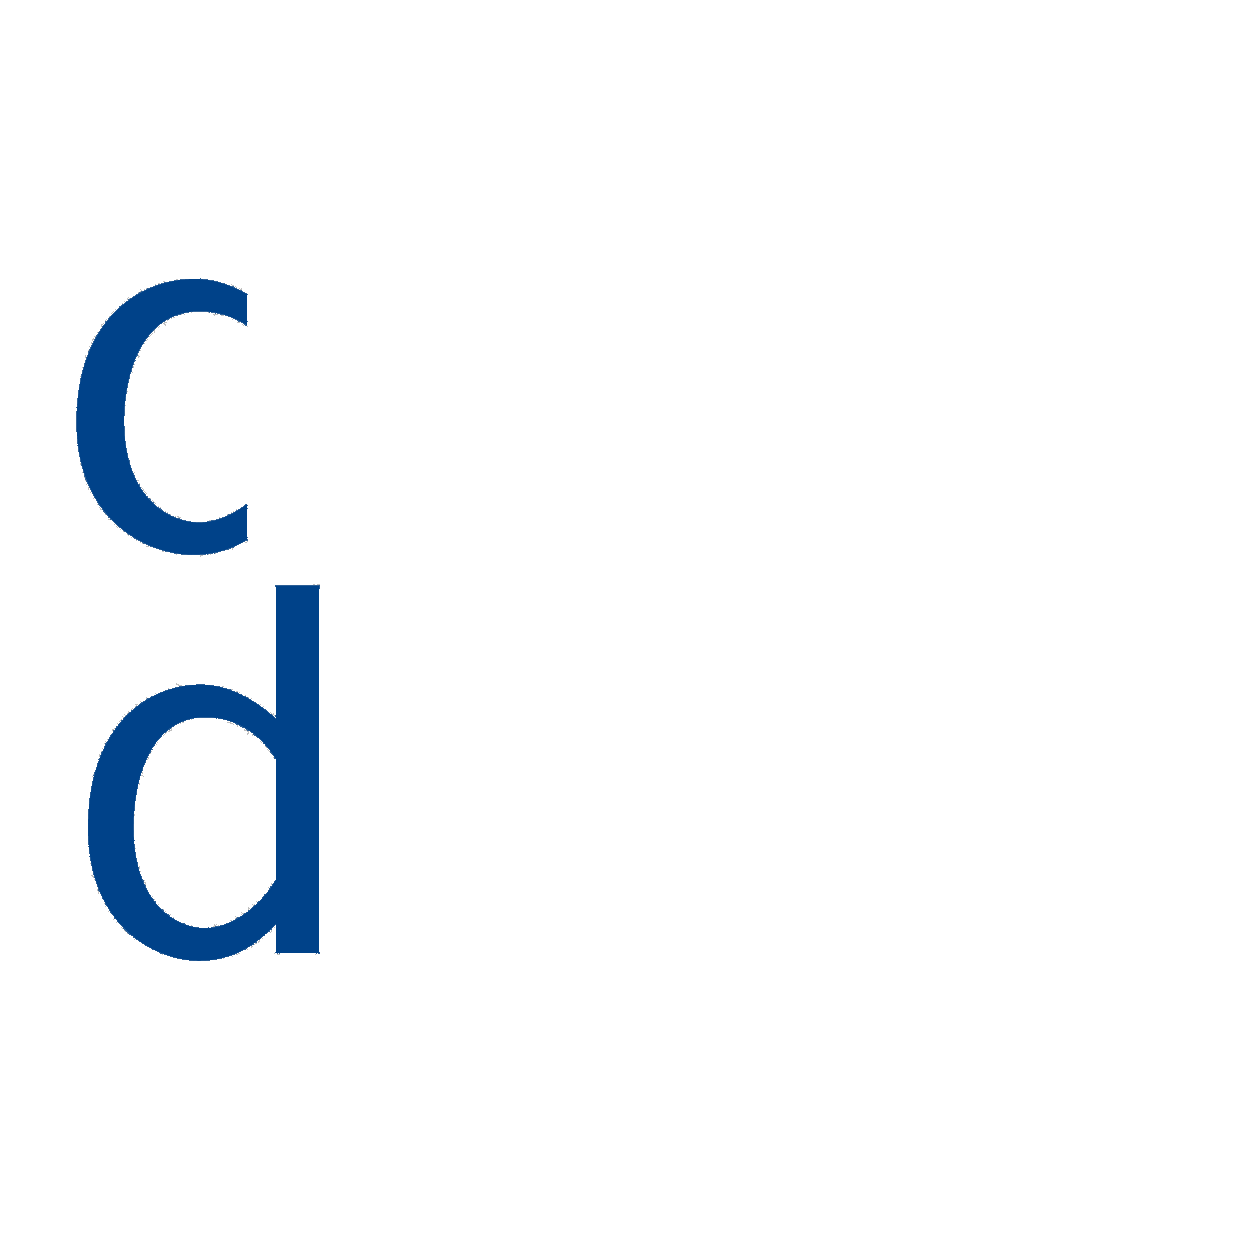 City dining logo